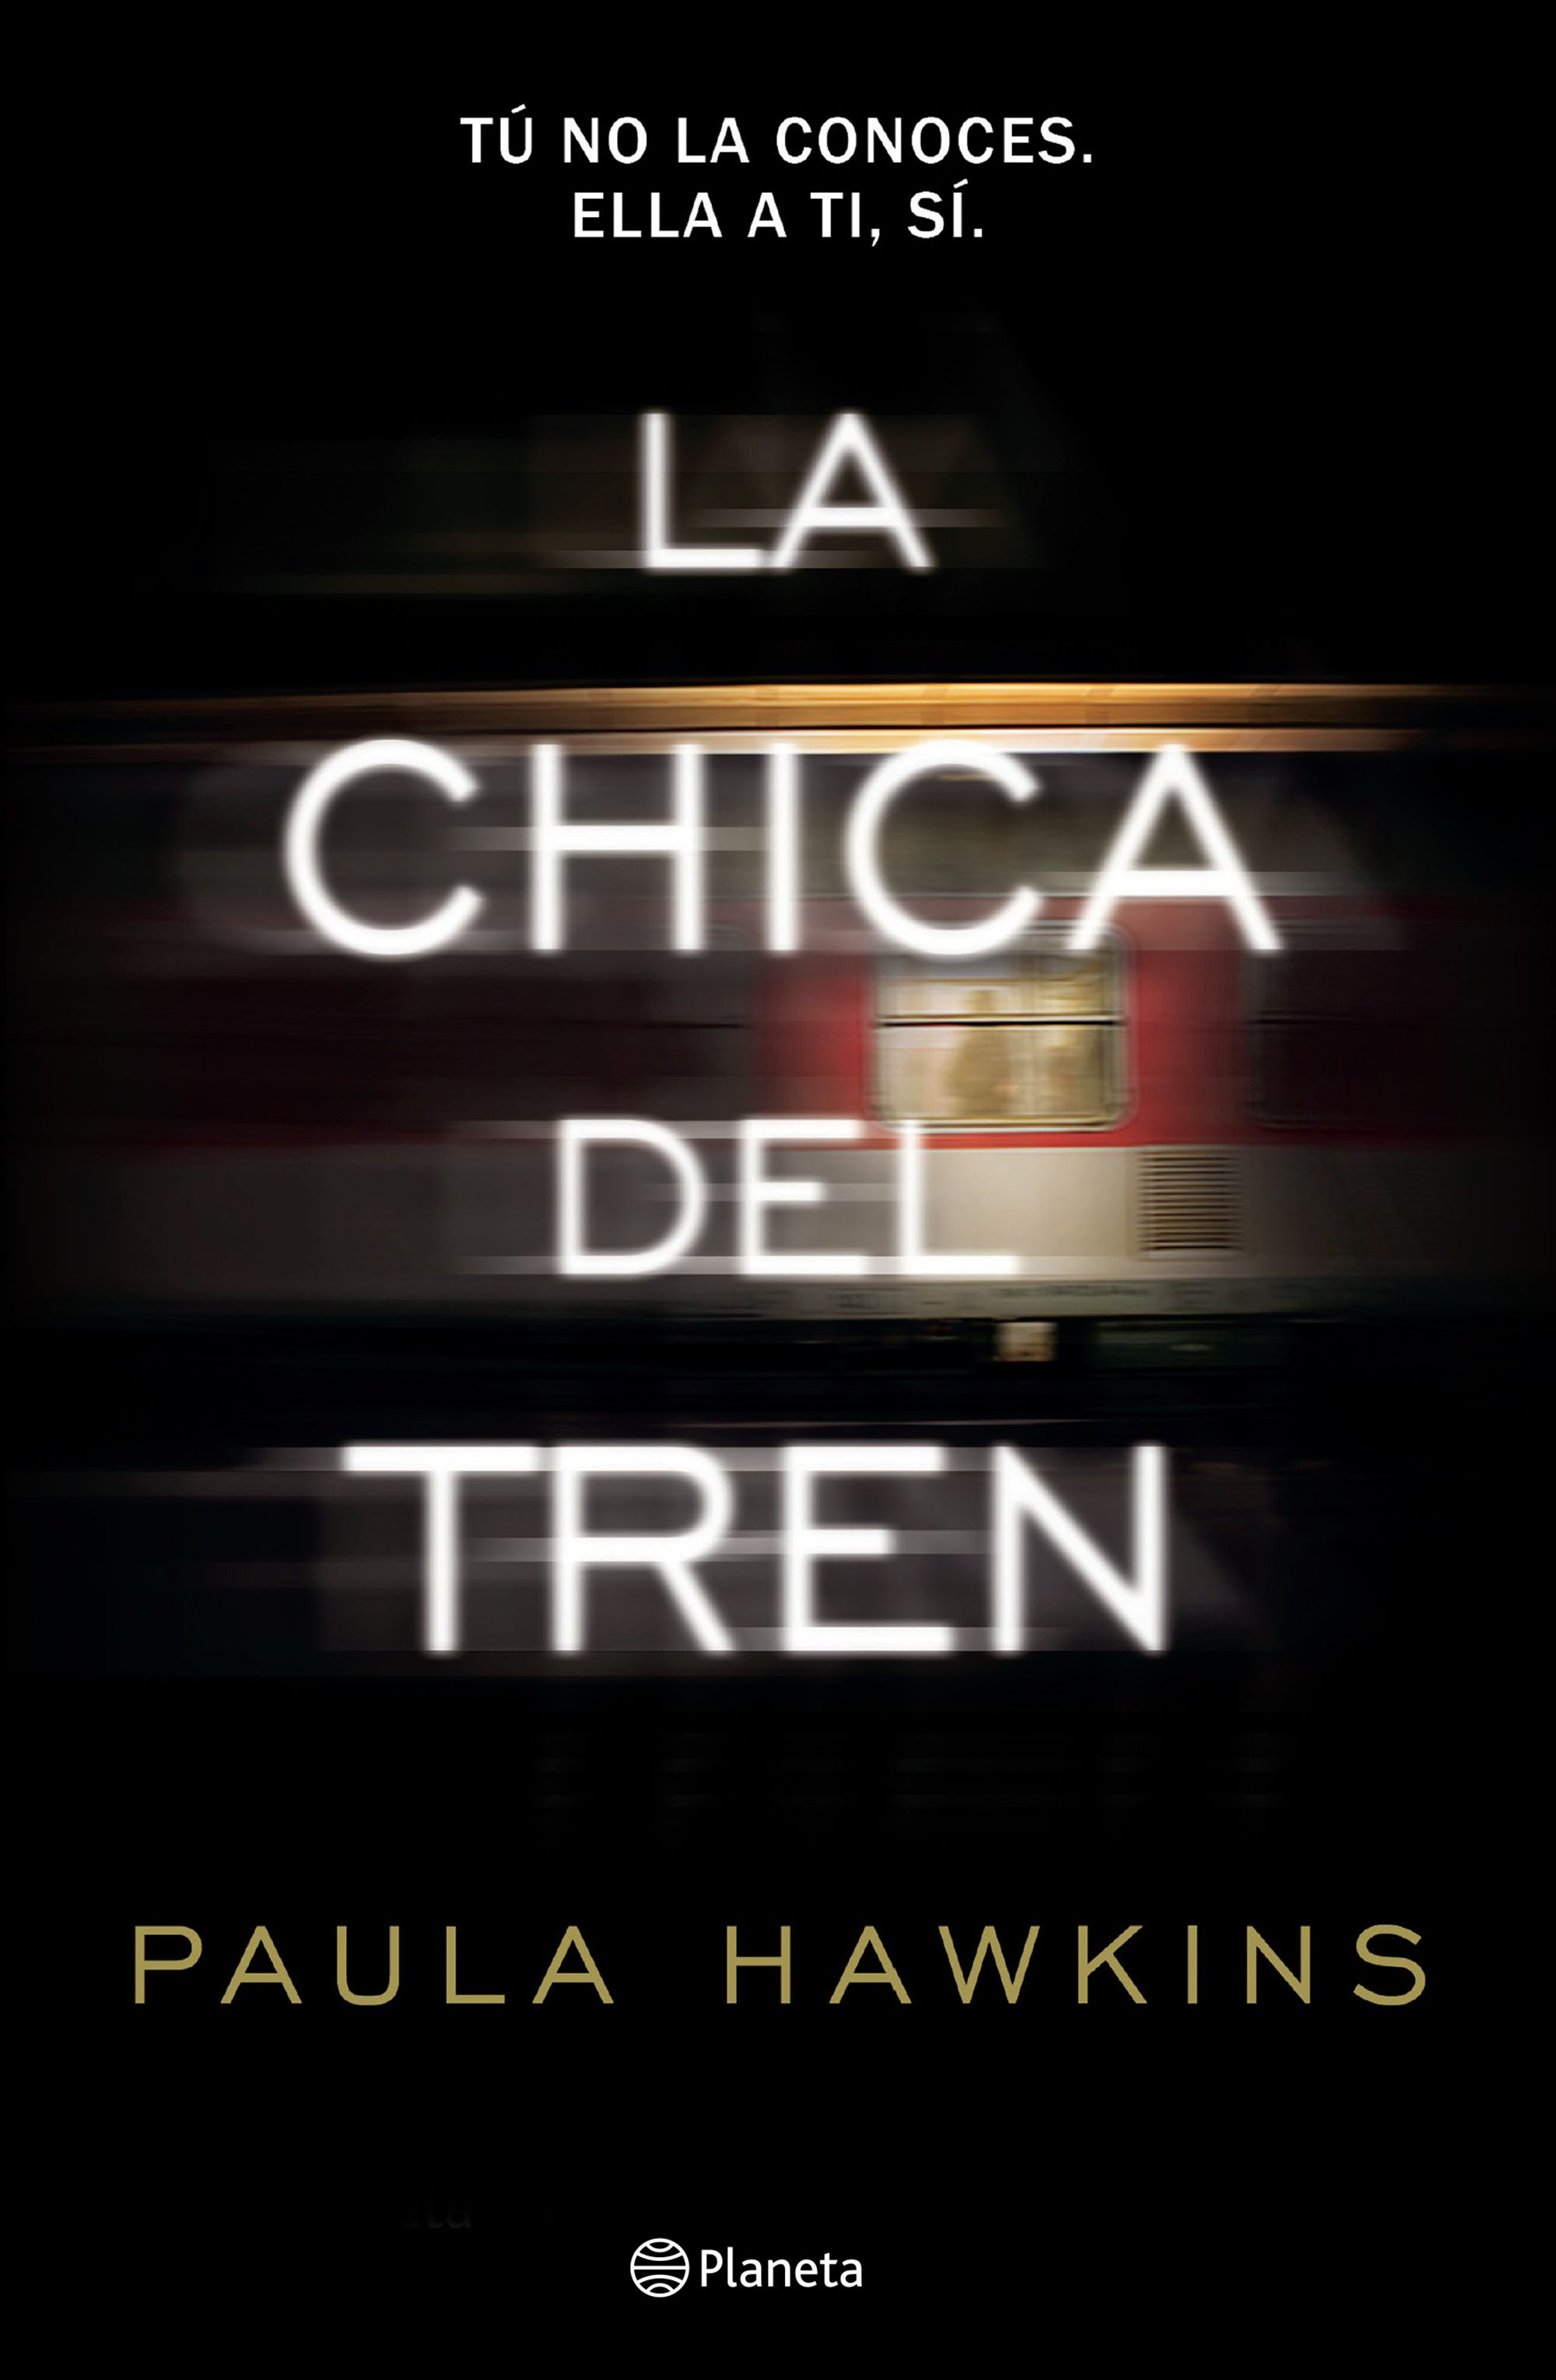 Photo of La chica del tren